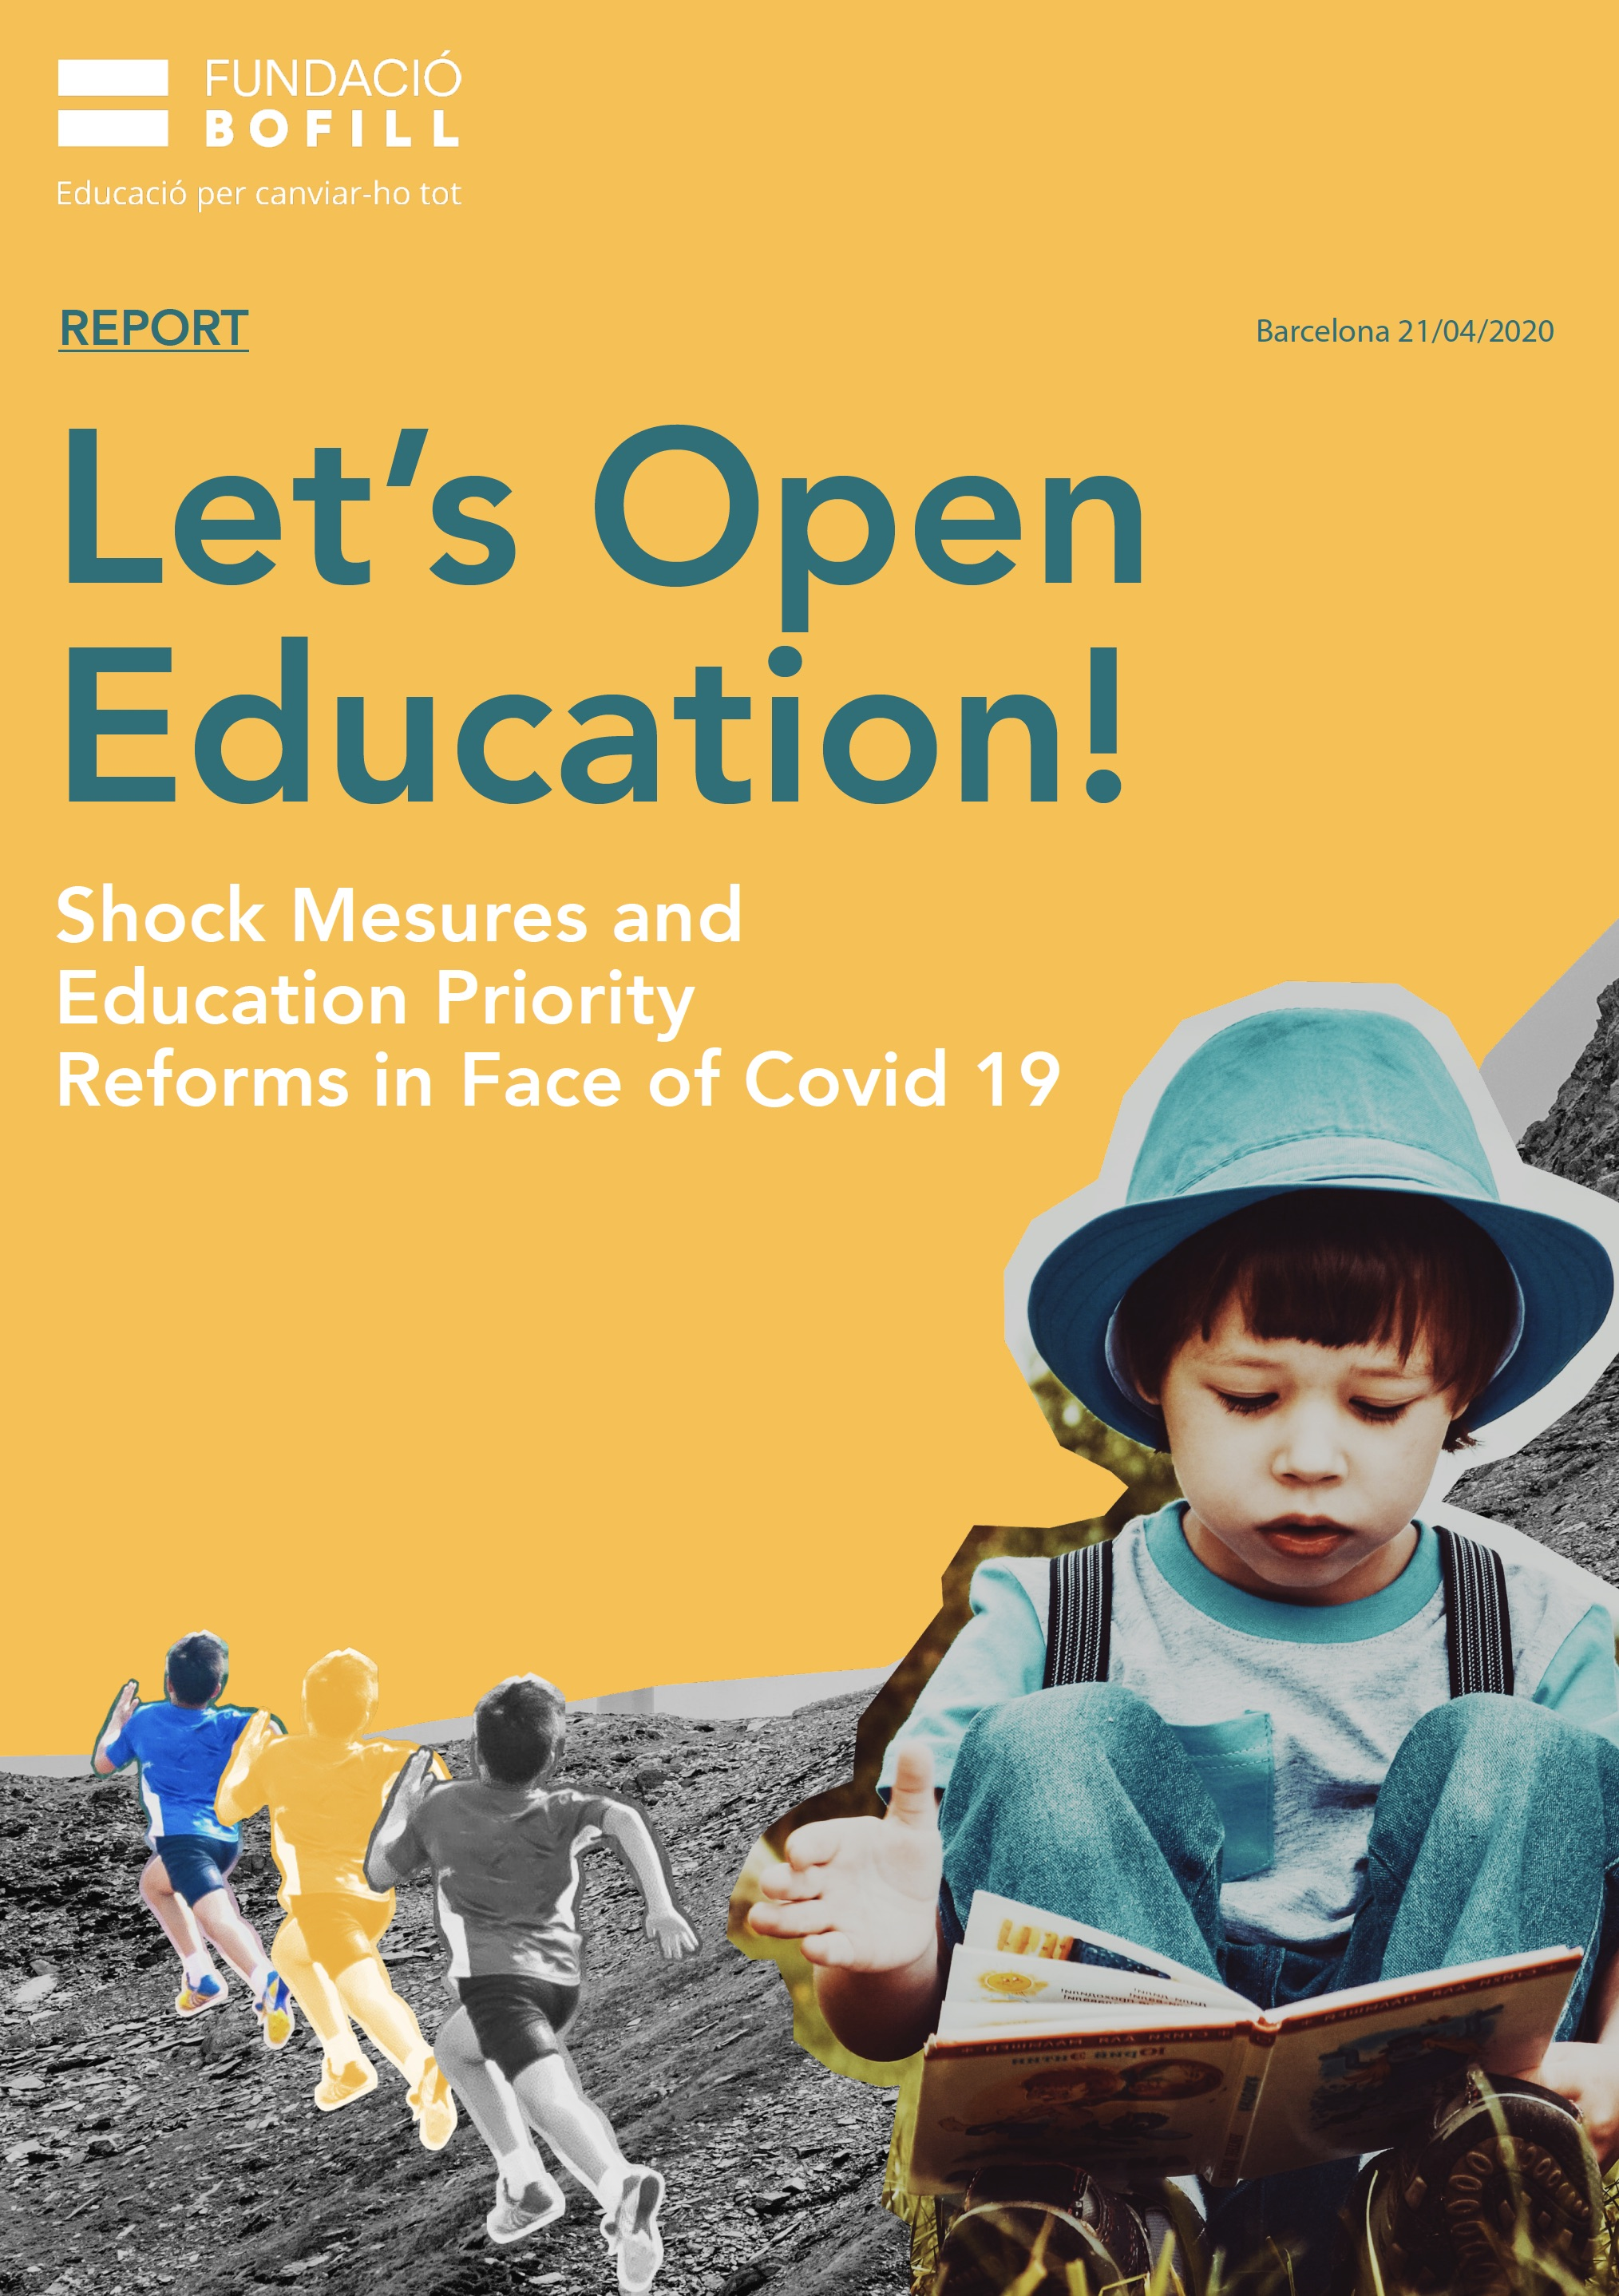 Let's Open Education! Shock Mesures and Education Priority Reforms in Face of Covid 19.